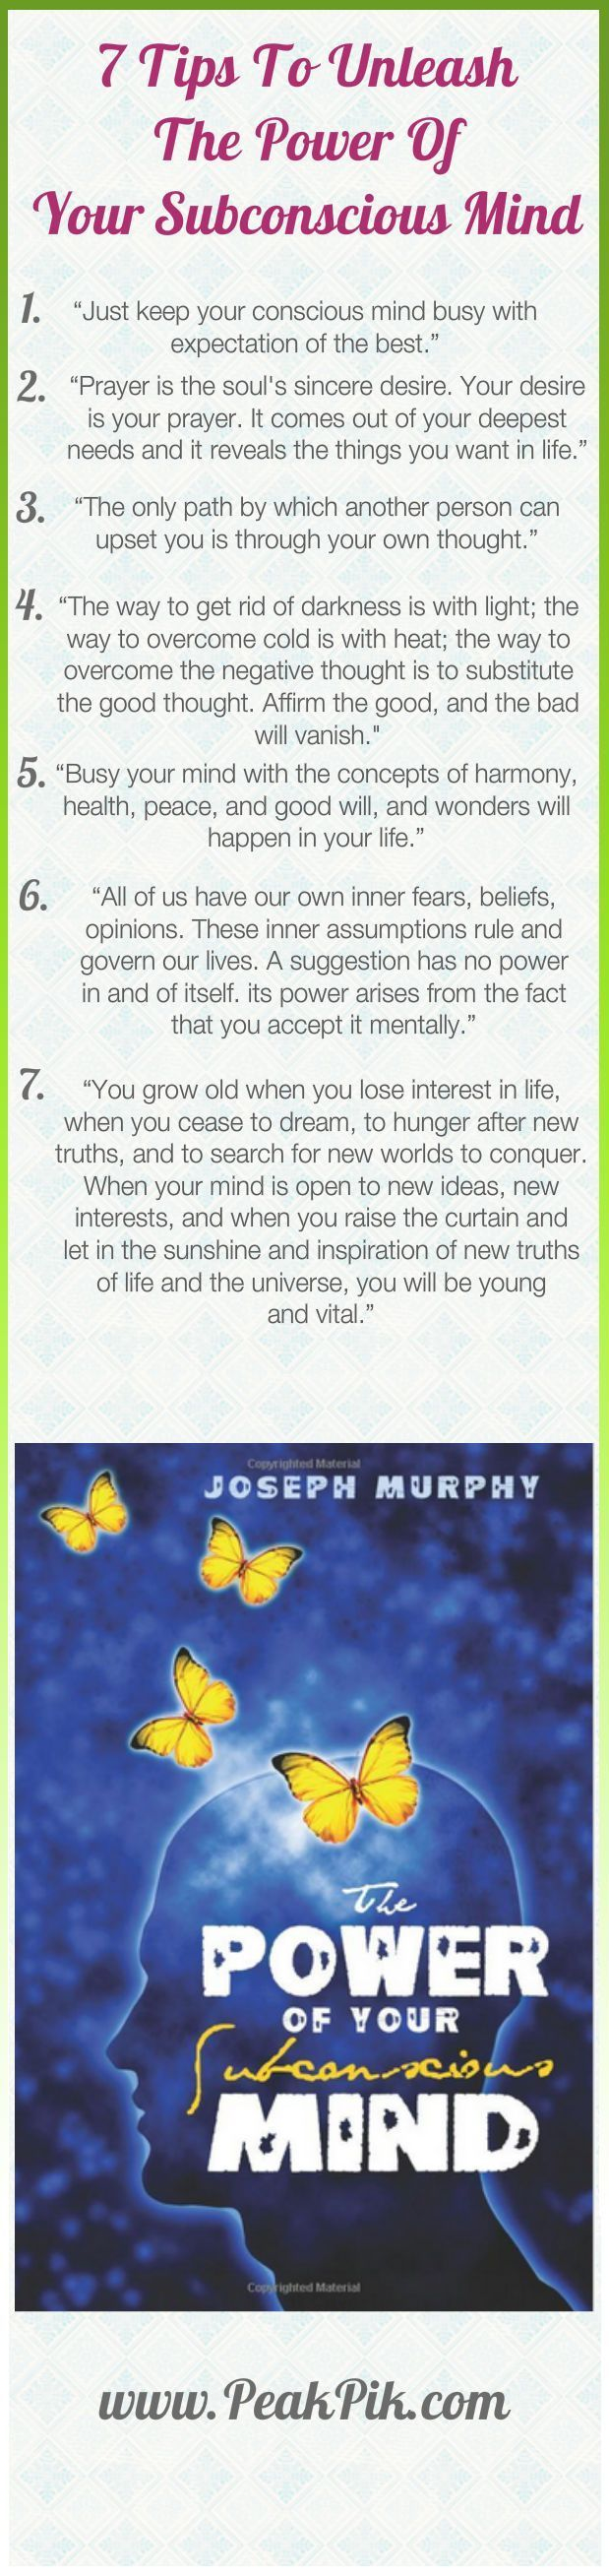 Daily Tips And Motivation | Power Of Positive Thinking-How To Unleash Your Subconscious Mind's Power